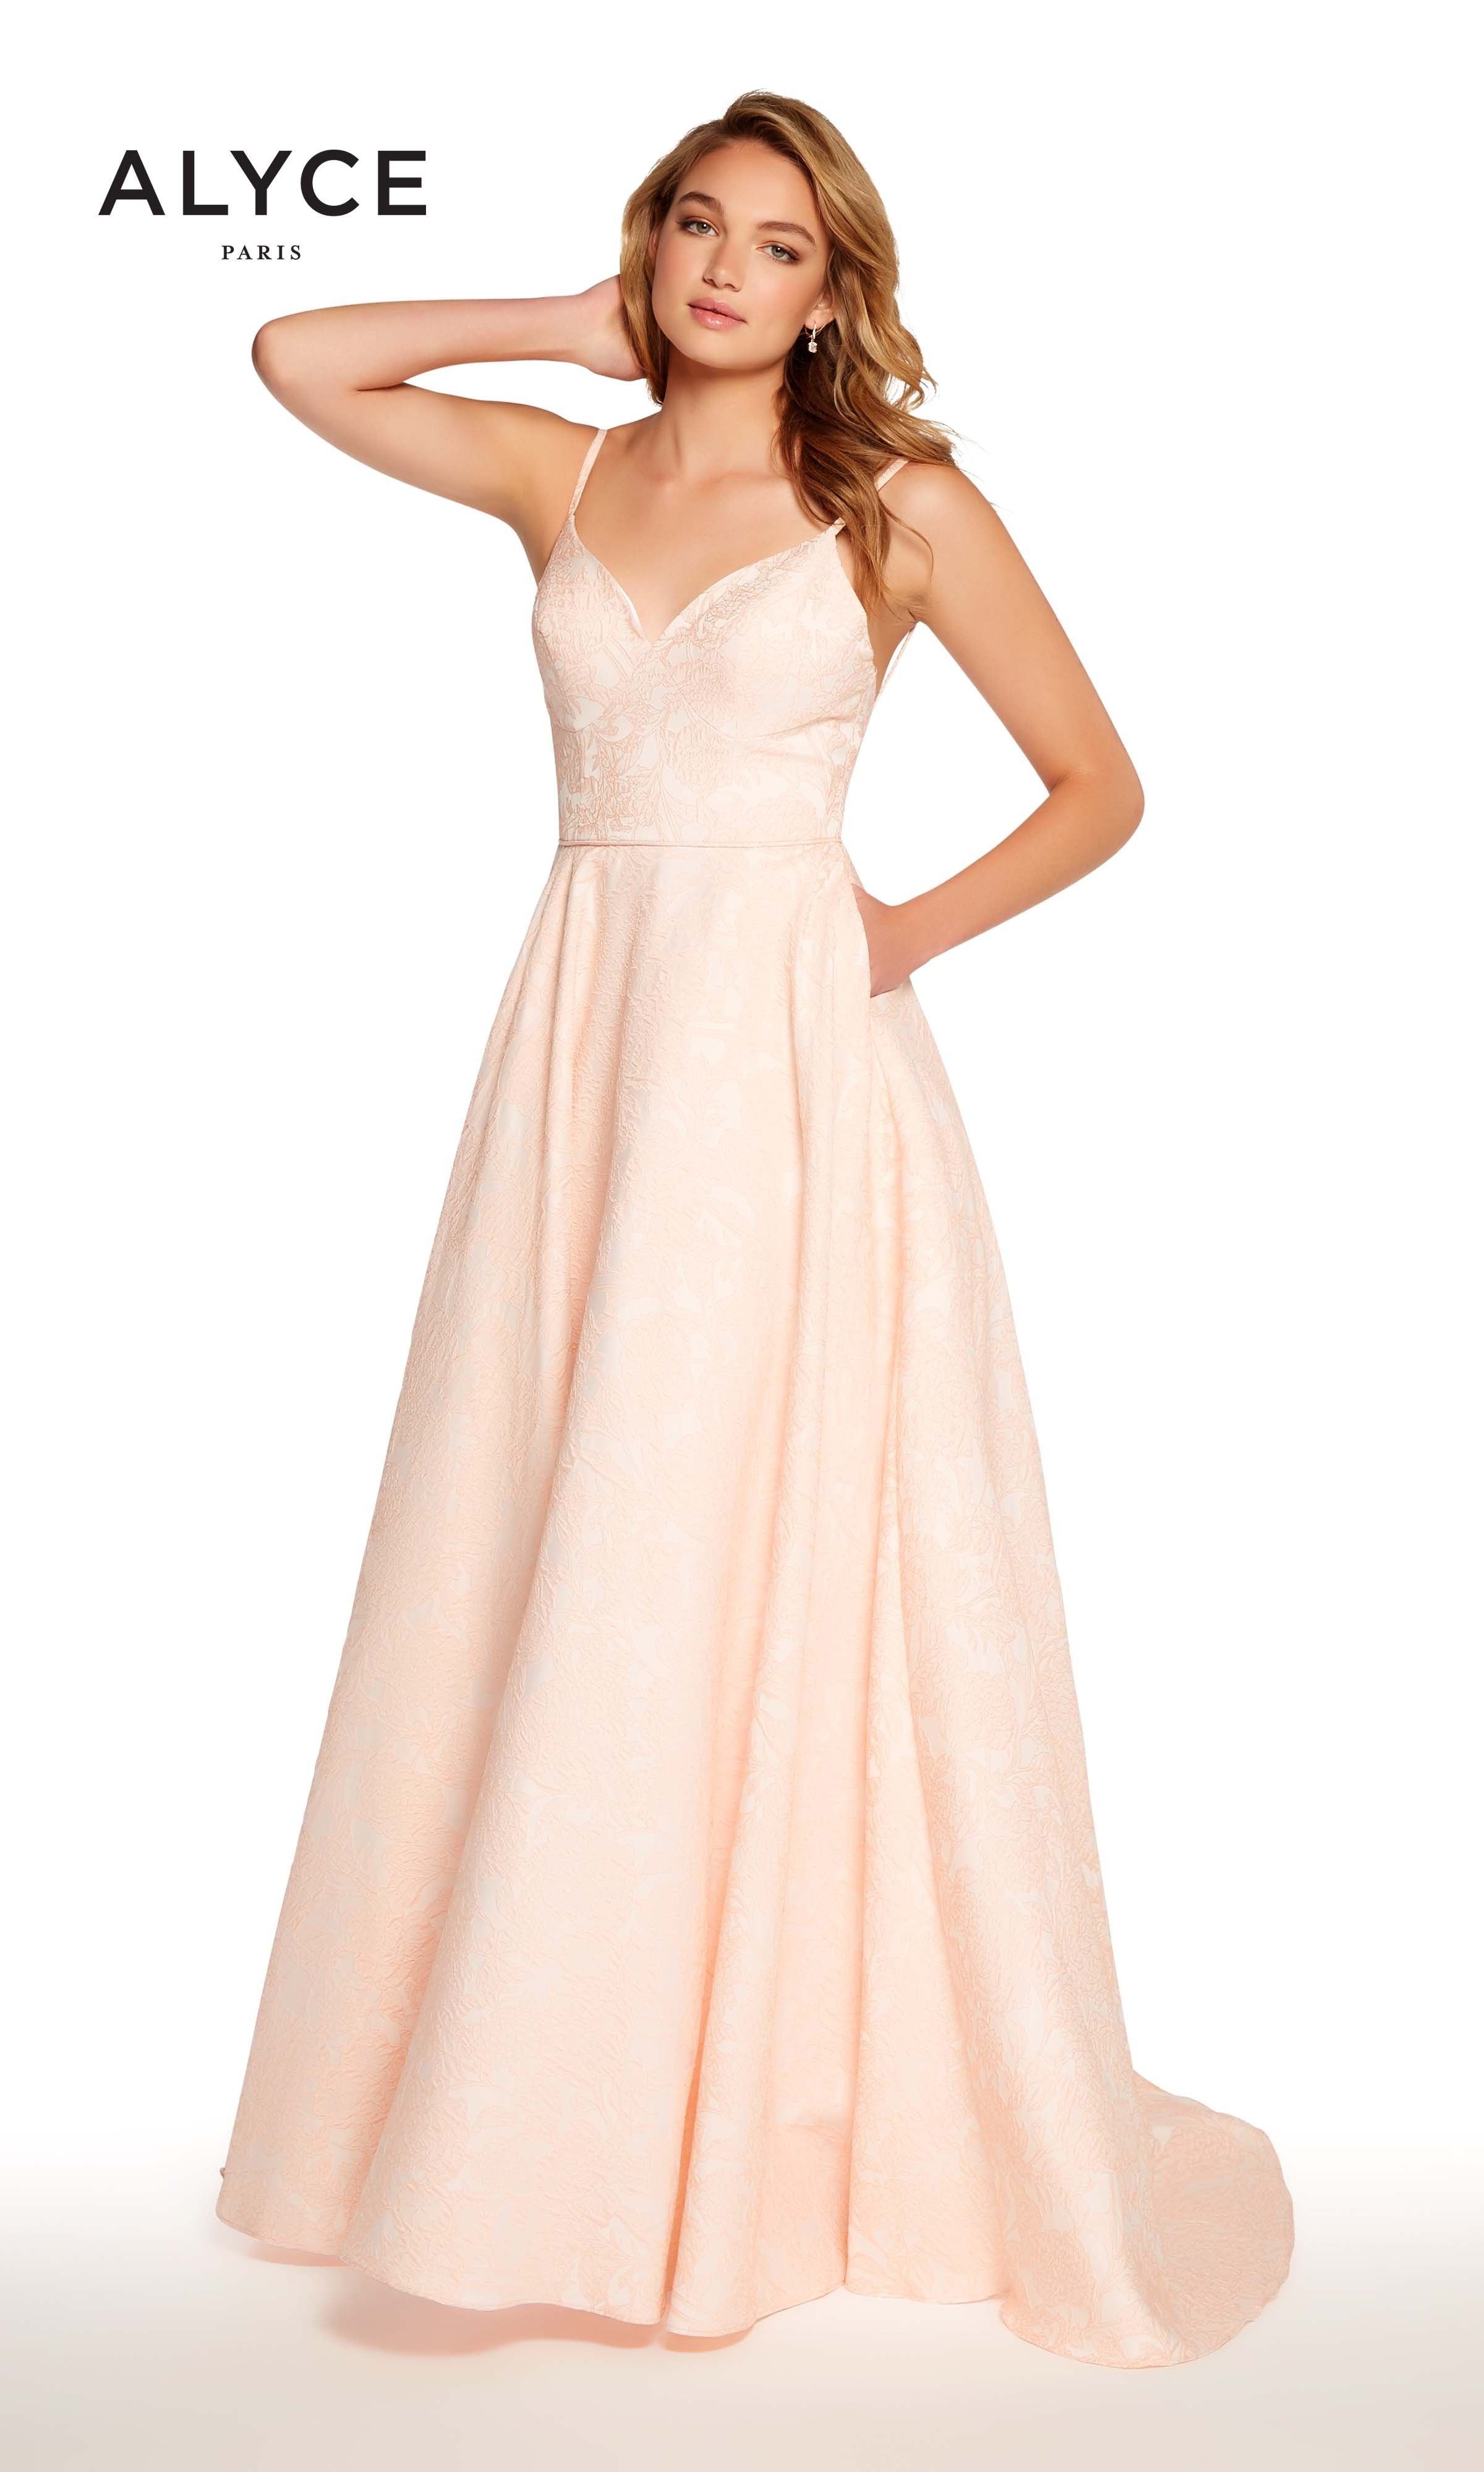 Wedding dress donations for military brides  Alyce  Light Coral Ball Gown with Pockets and Spaghetti Straps